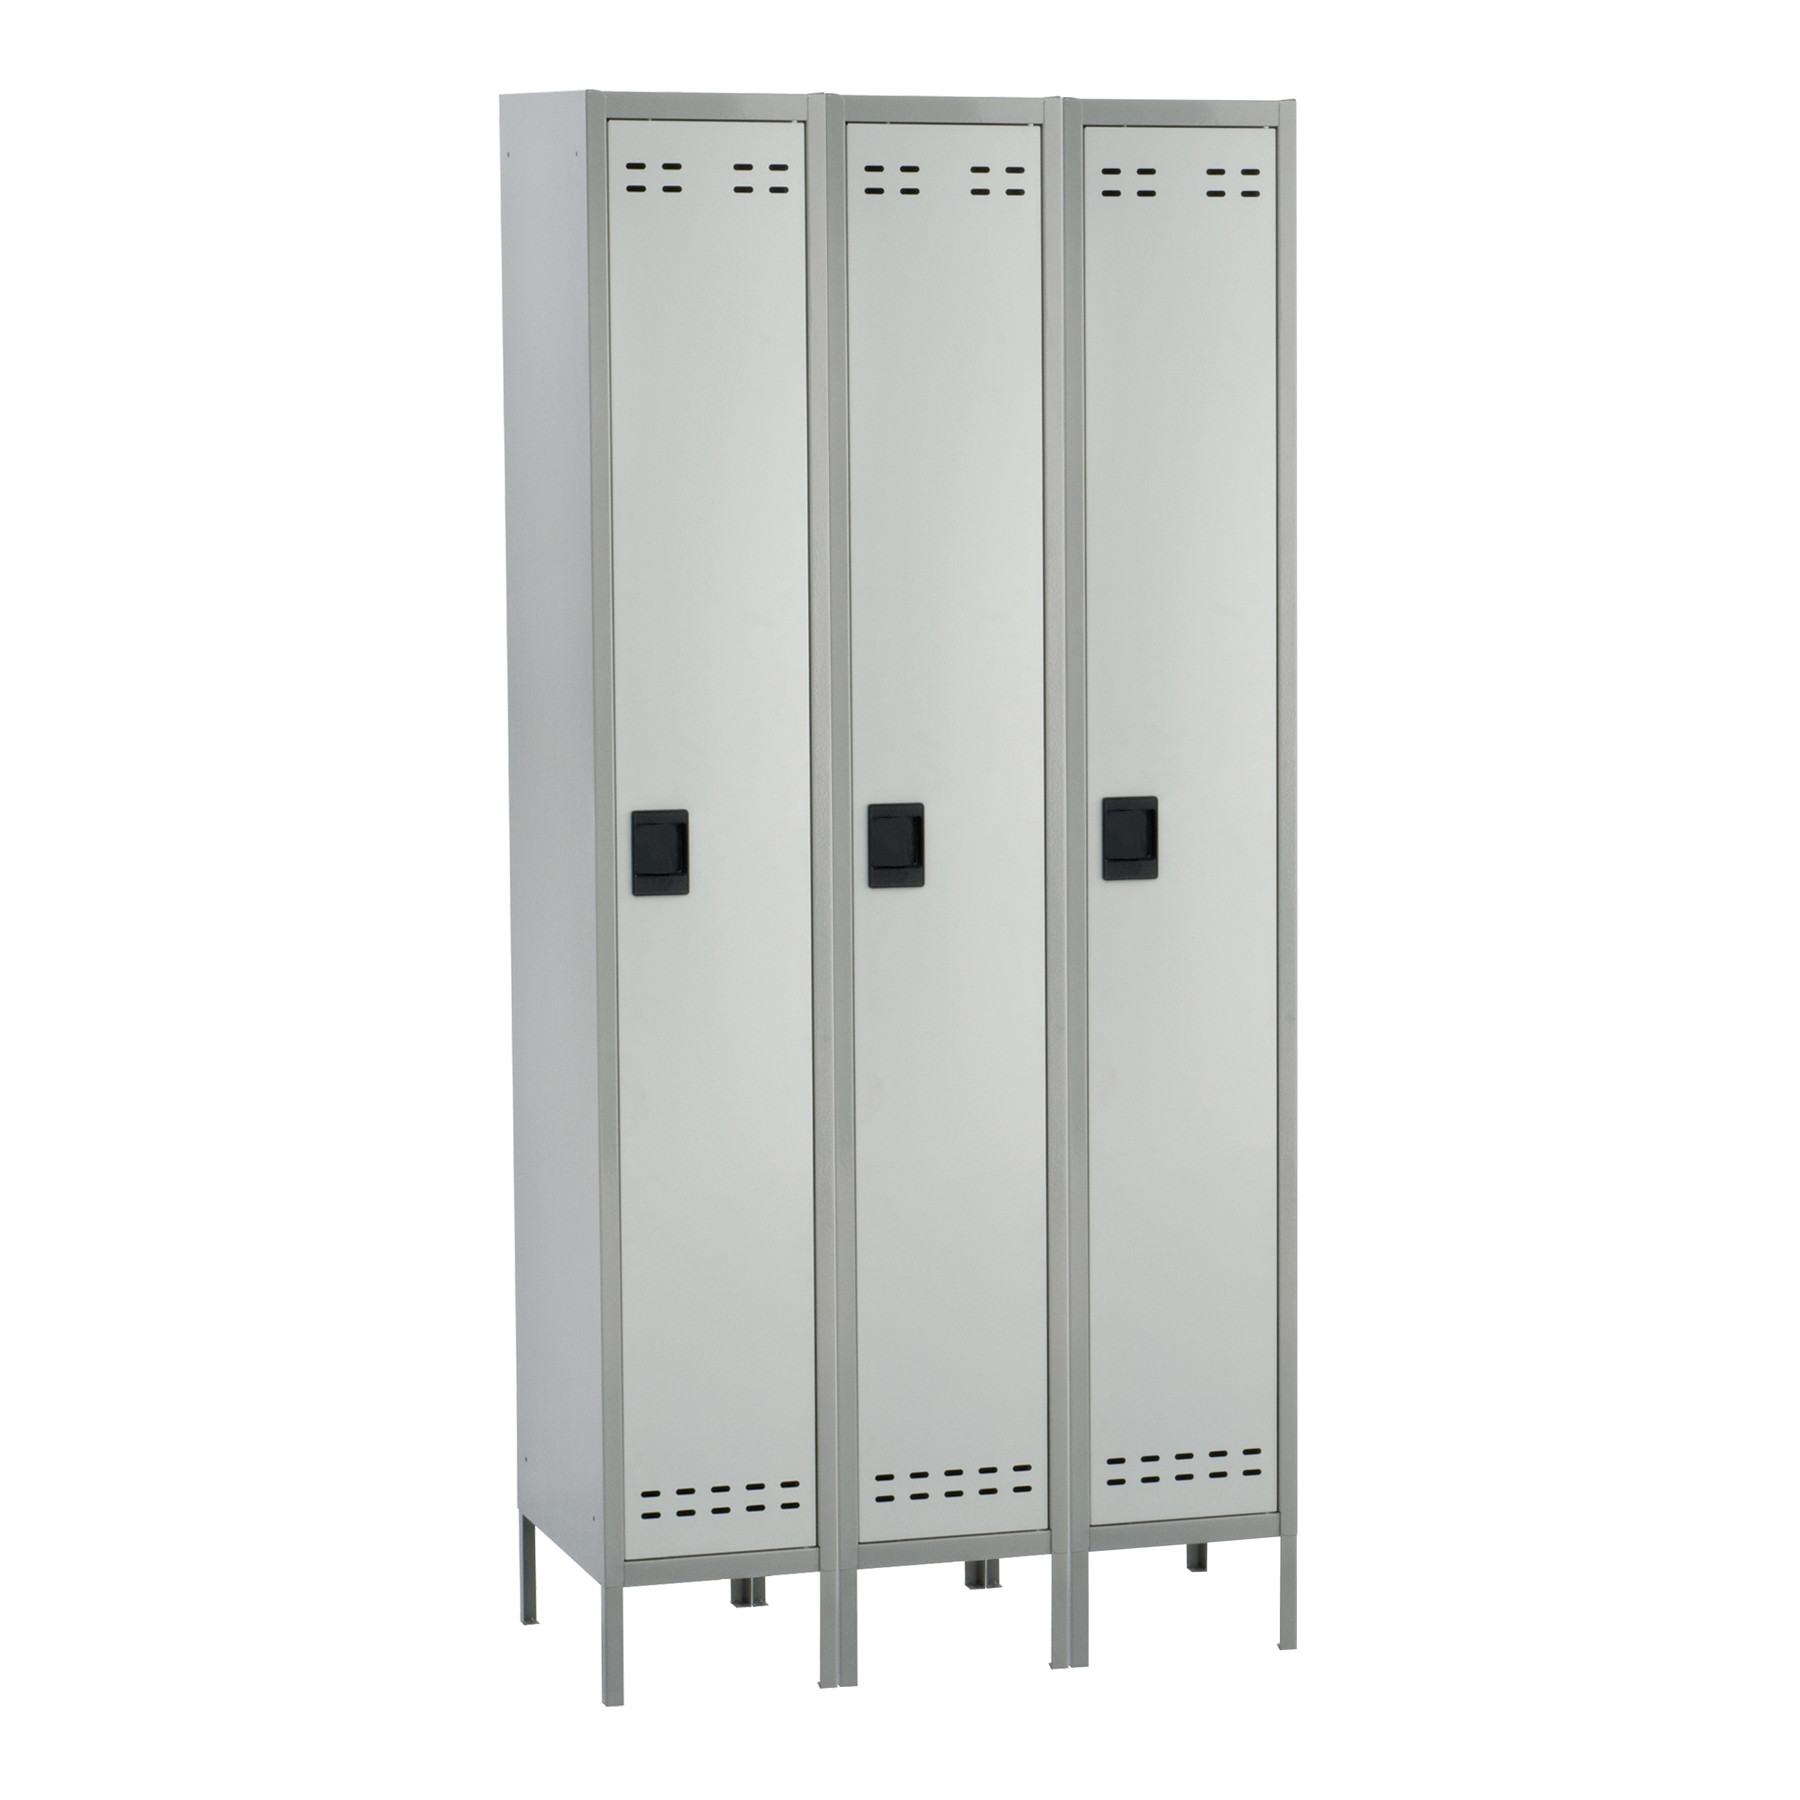 Brilliant Penco Lockers for Best Locker Choice: Student Lockers | Lockers Metal | Penco Lockers